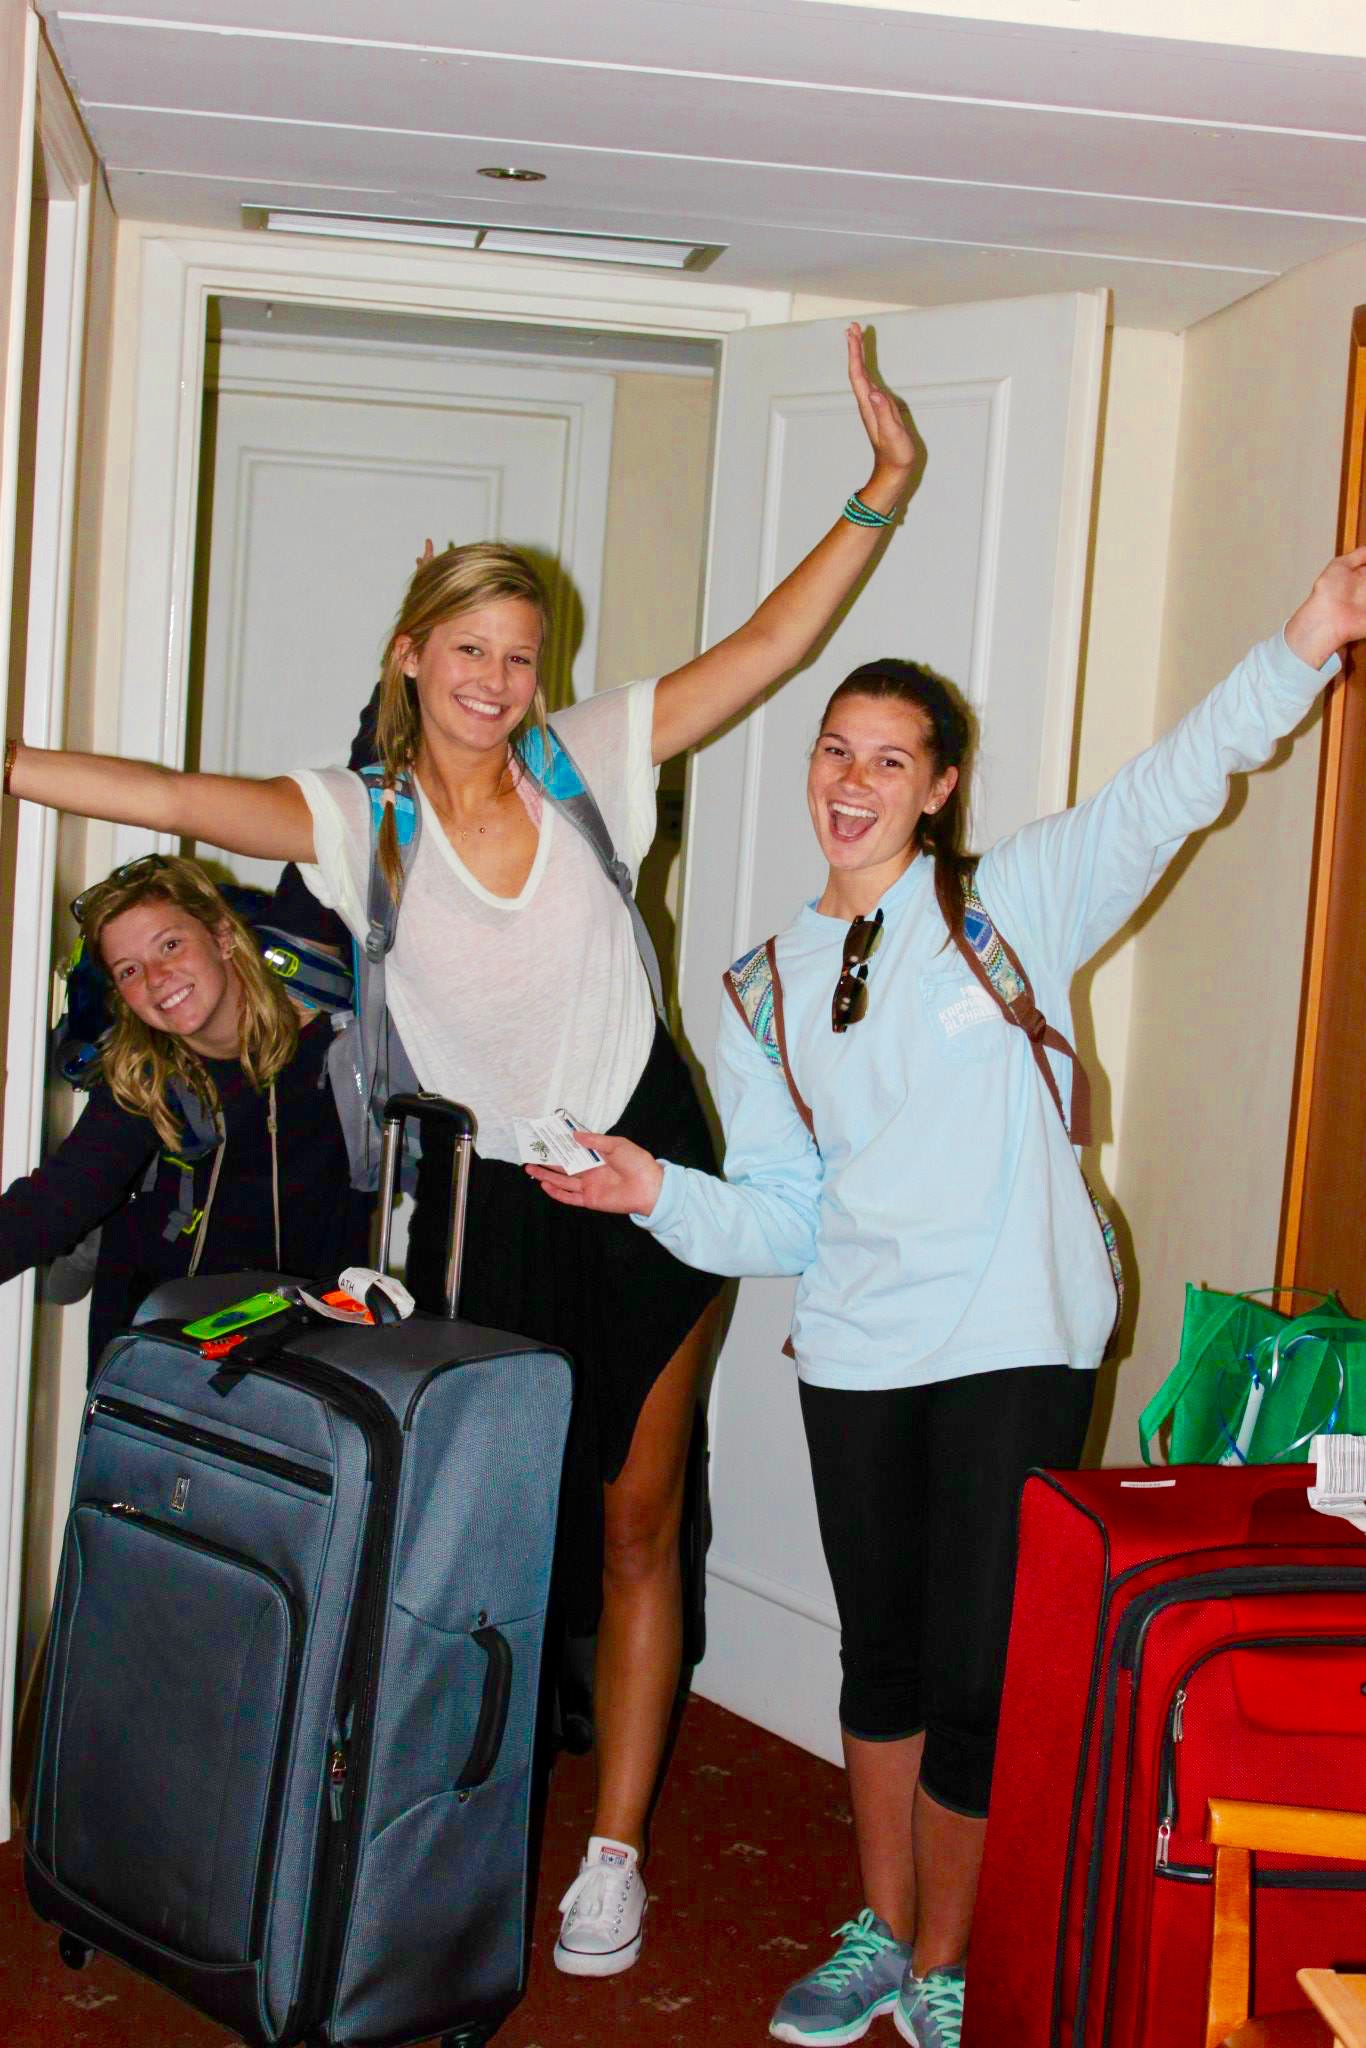 Students in hotel ready for flight